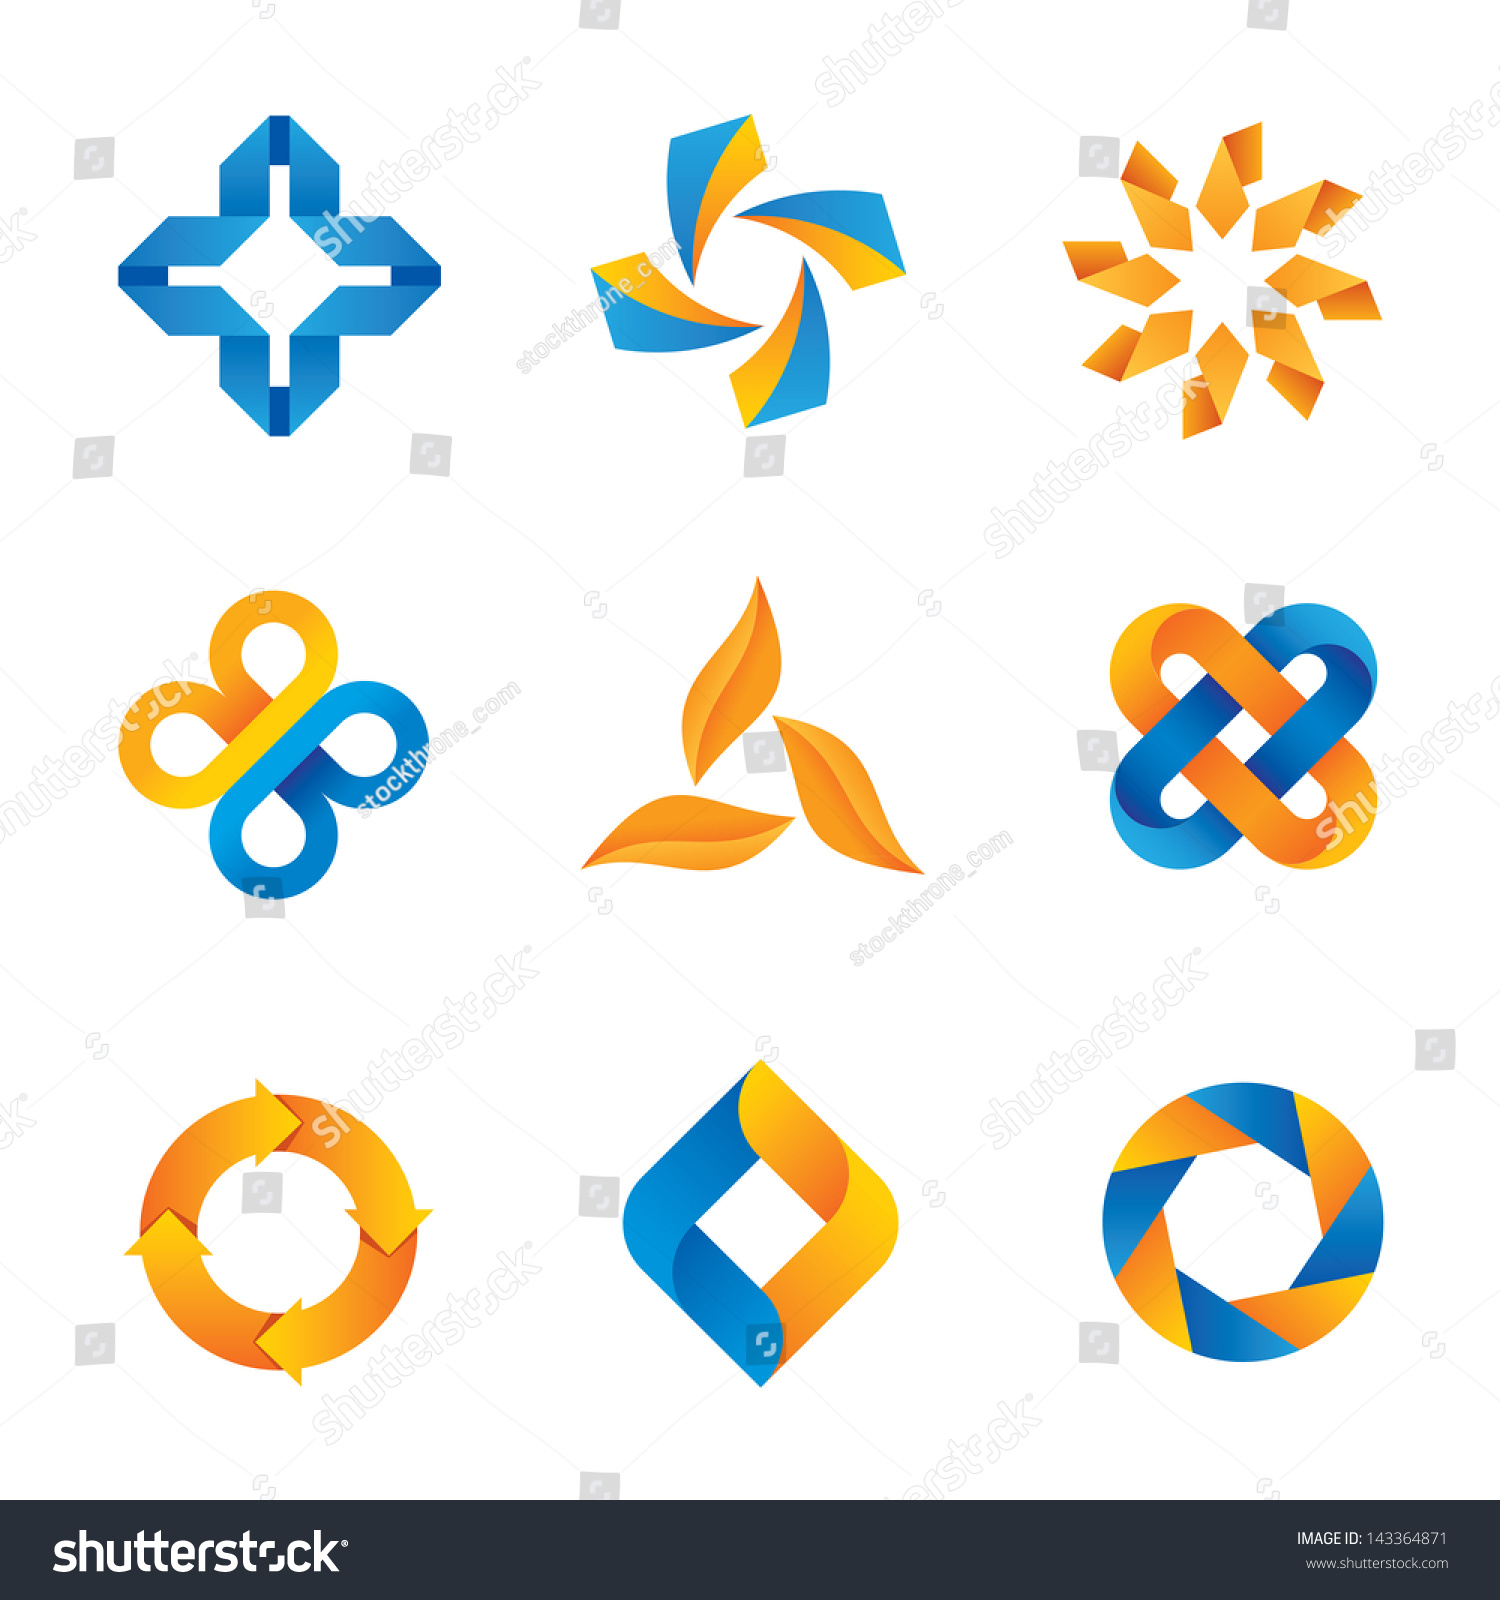 Social cool loop logo symbols icons stock vector 143364871 social cool loop logo symbols and icons biocorpaavc Image collections